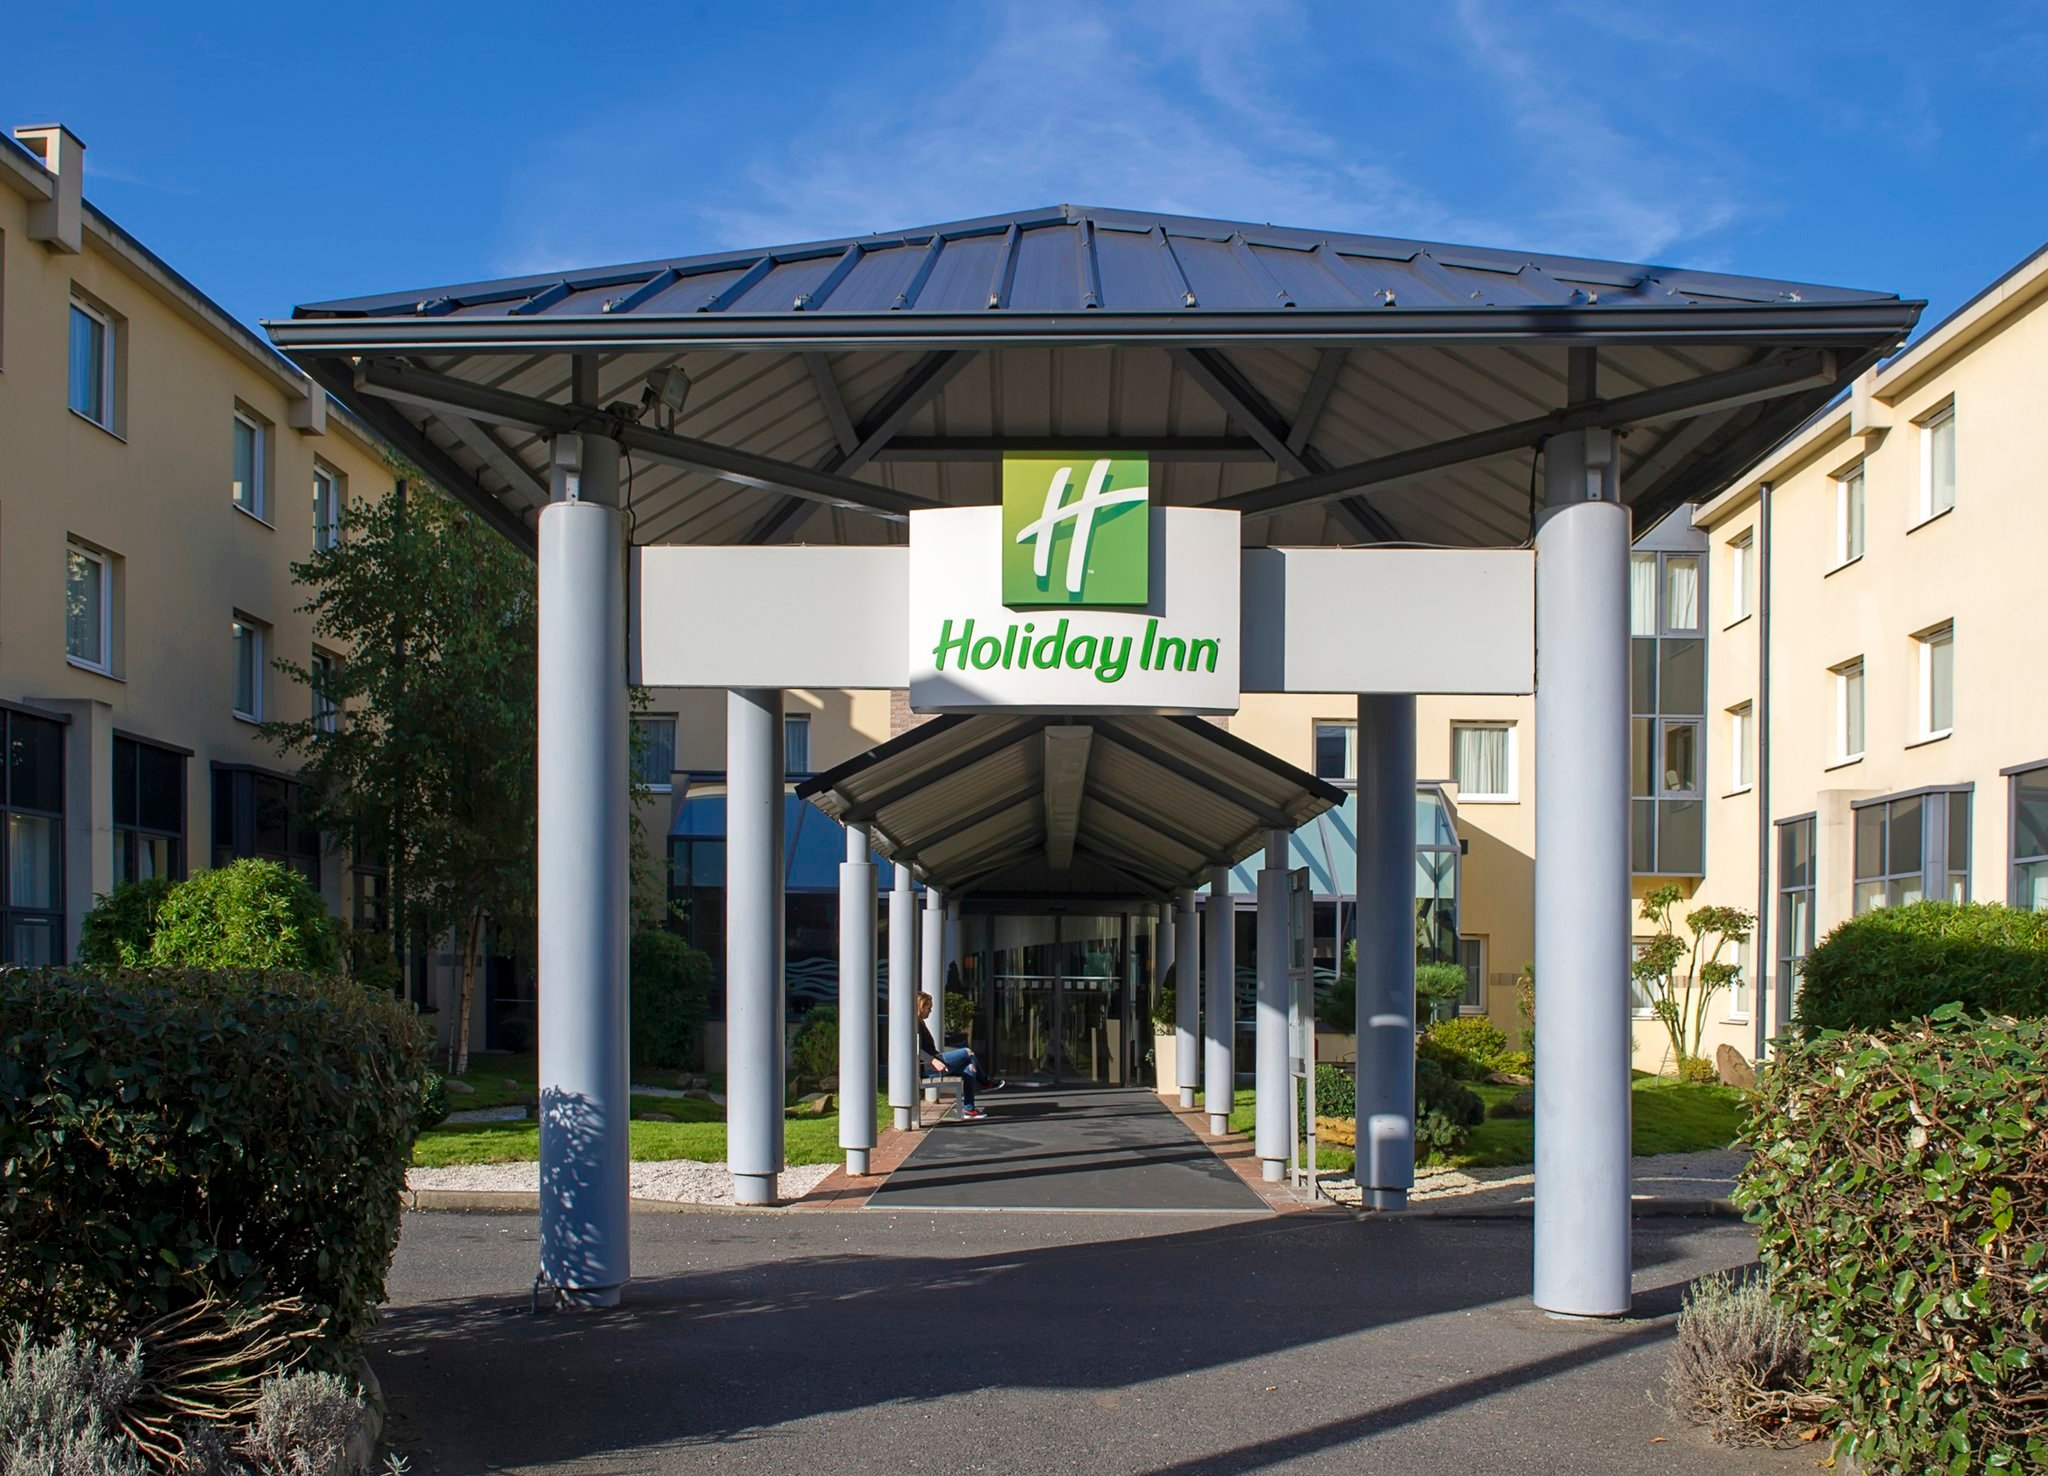 ‪Holiday Inn Paris-Charles De Gaulle Airport‬